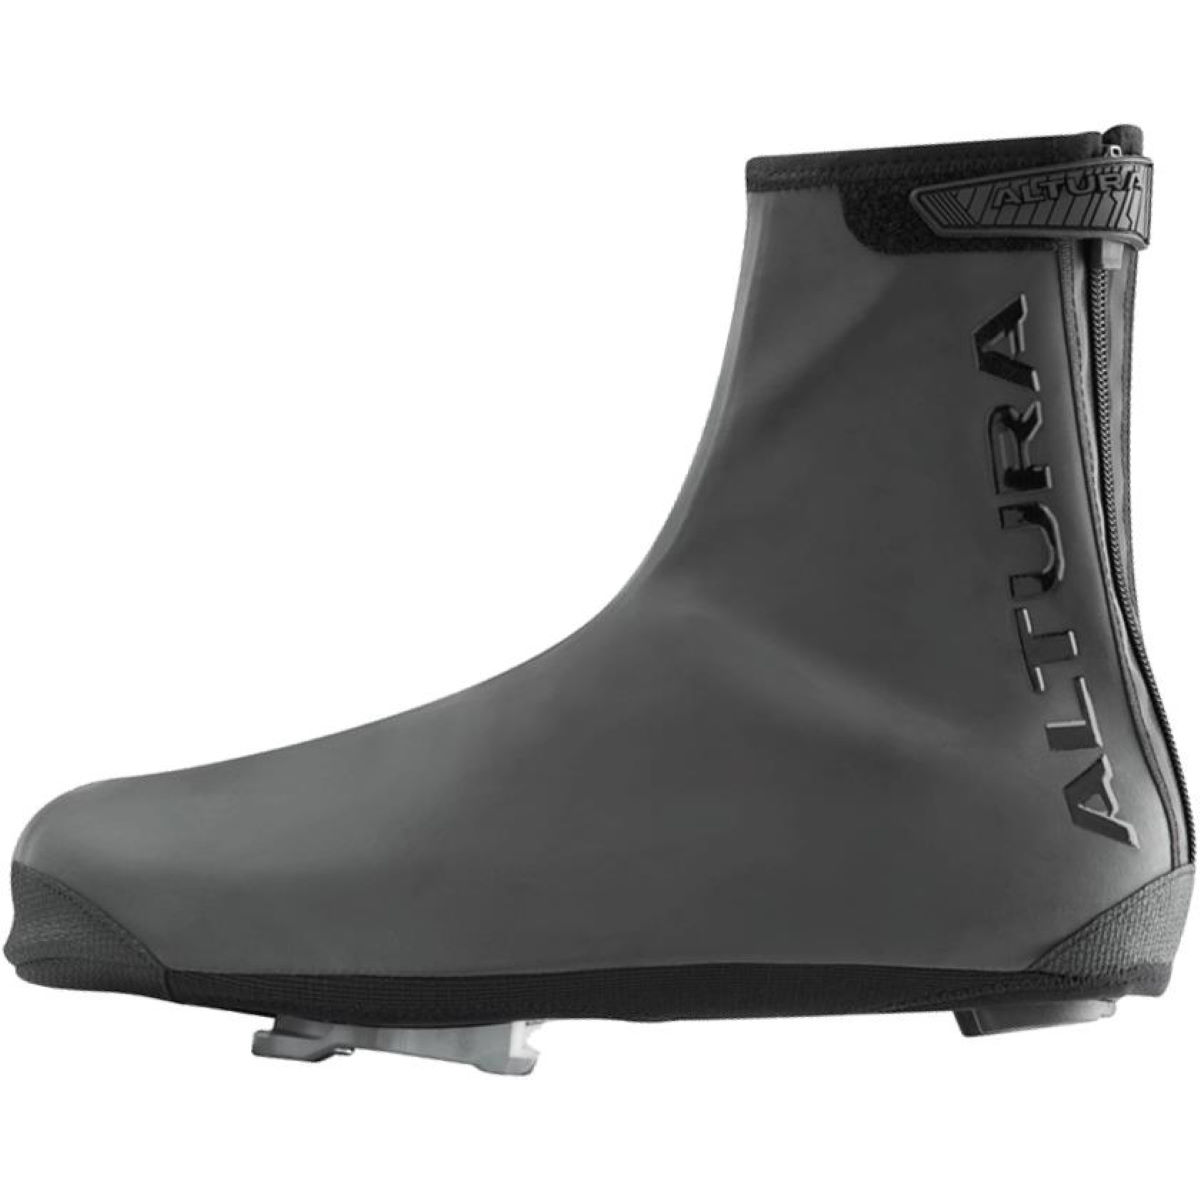 Altura Thermo Elite Overshoes - Cubrezapatillas